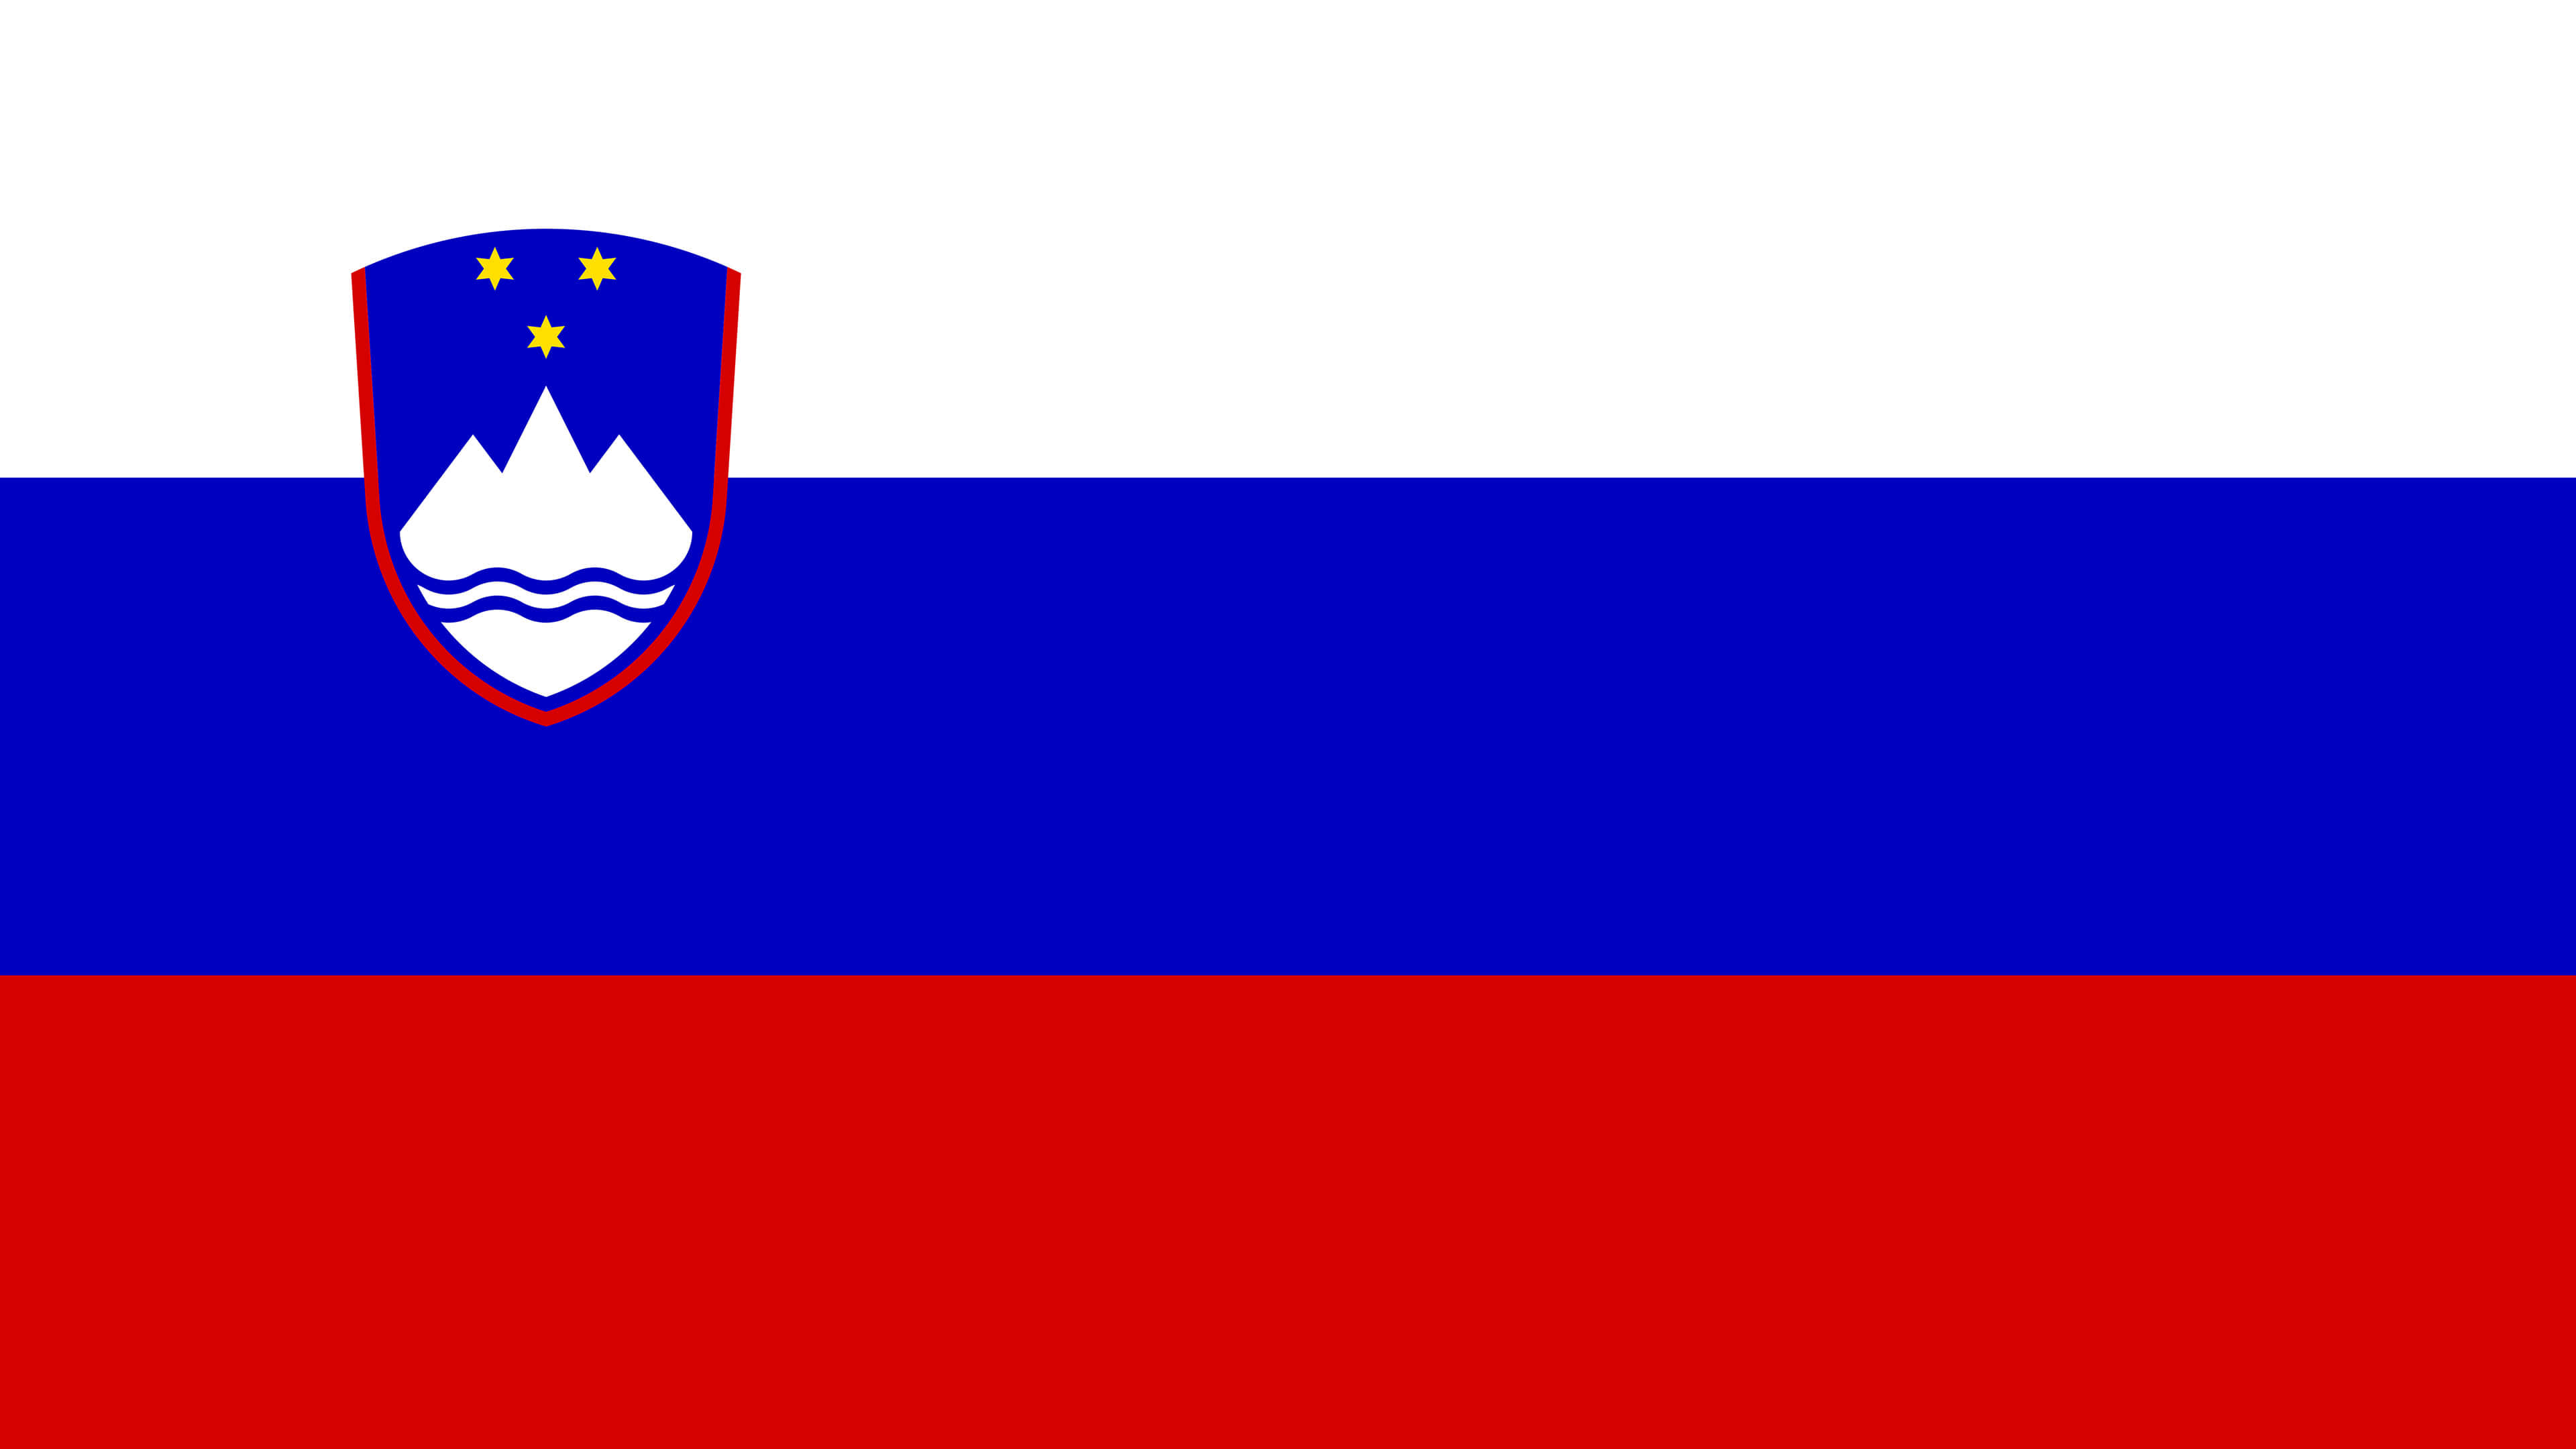 slovenia flag uhd 4k wallpaper